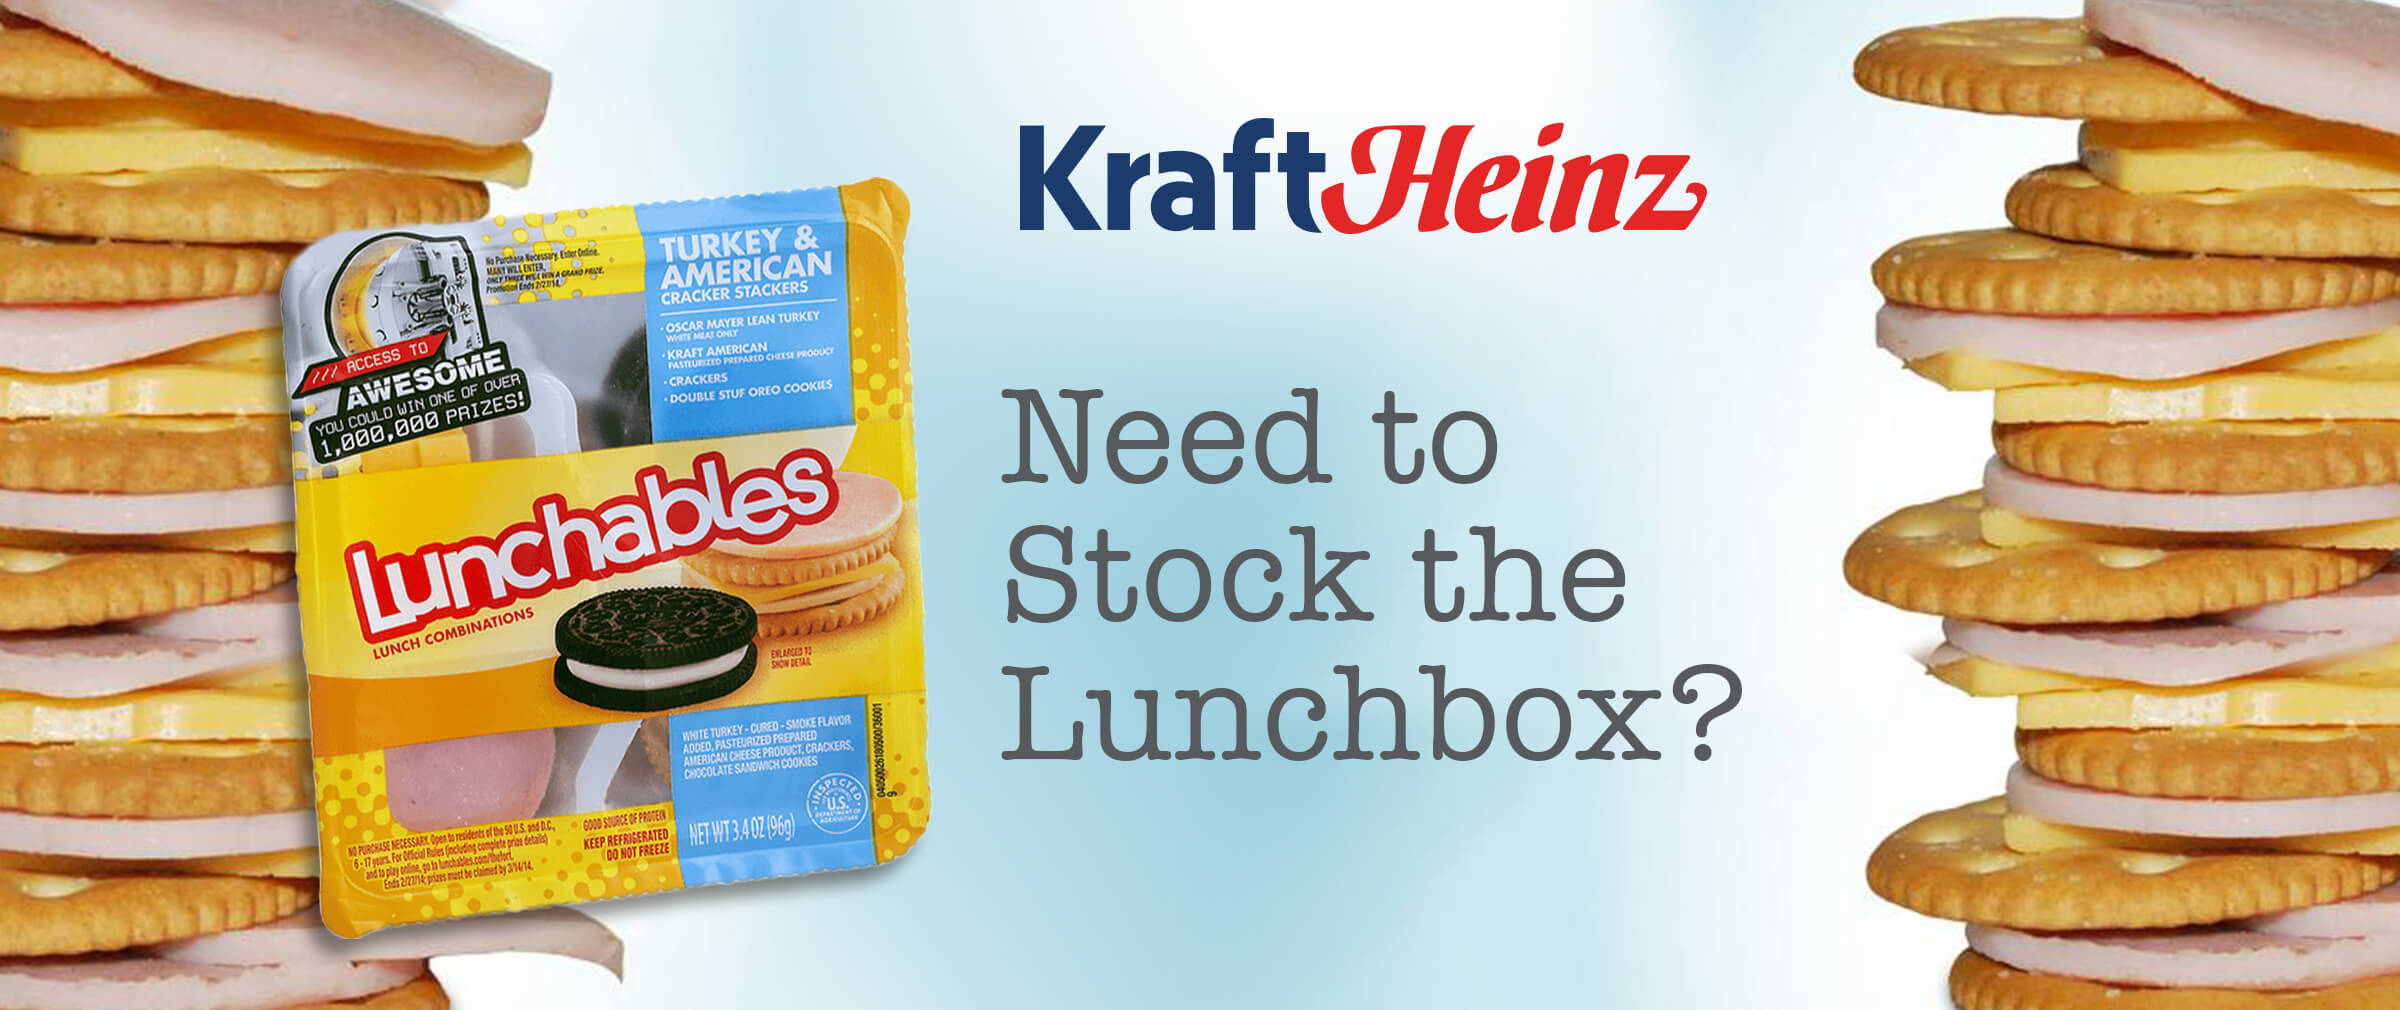 Kraft Heinz - Need to stock the lunchbox?